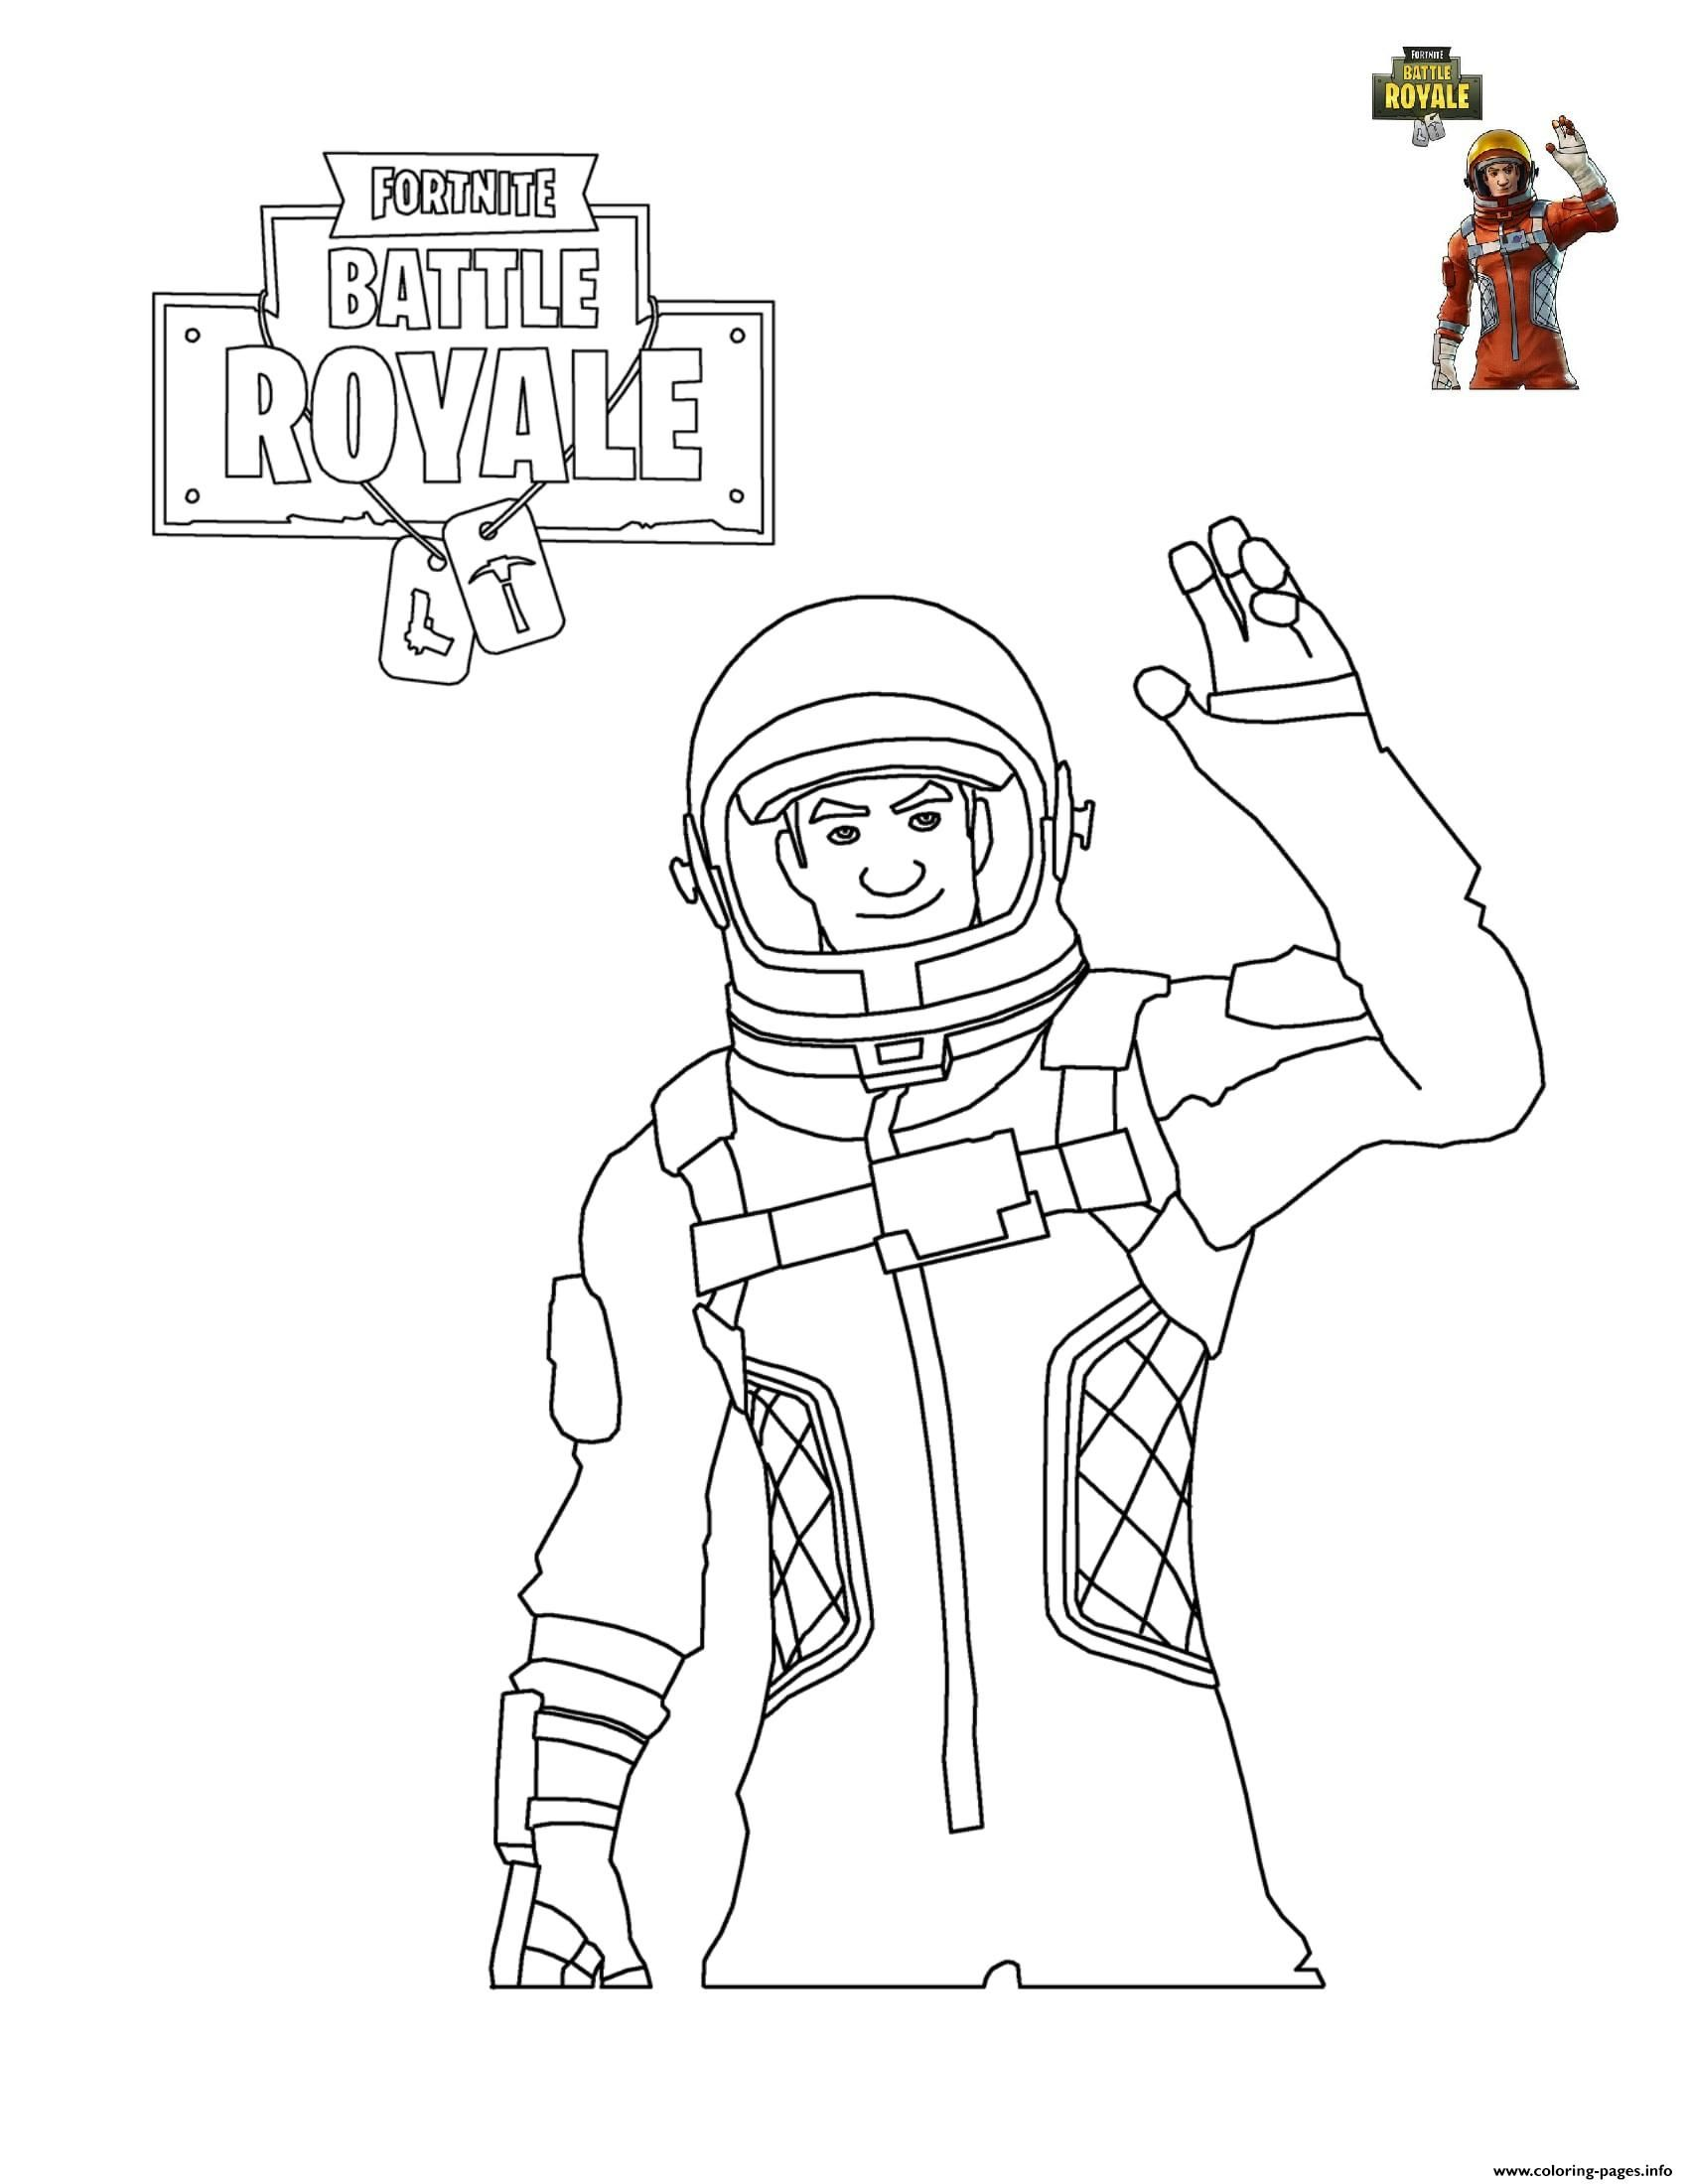 Print Fortnite Character 5 Coloring Pages Coloring Pages Coloring Pages For Boys Free Coloring Pages